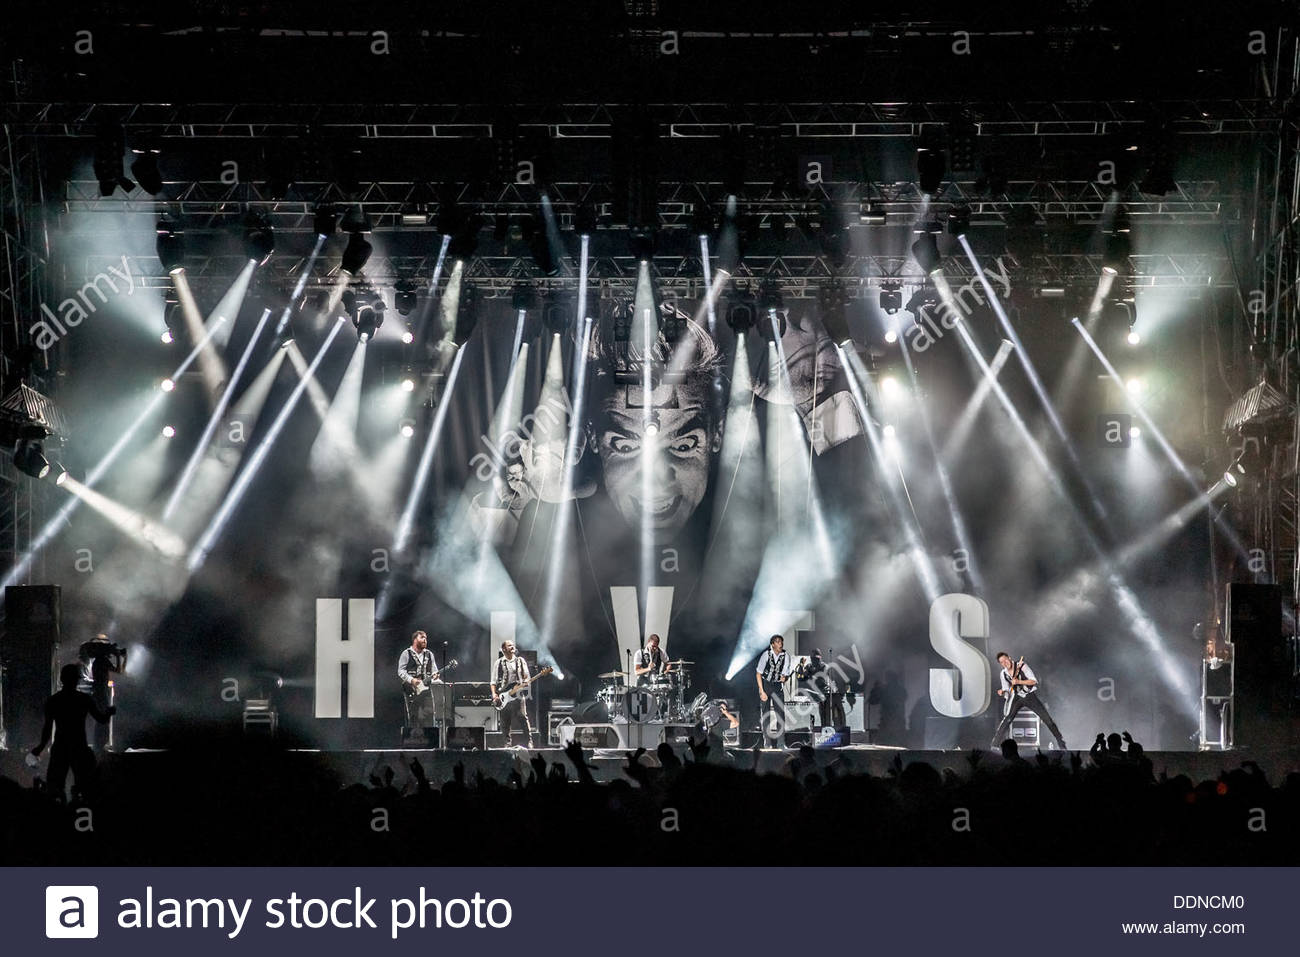 The Hives performing live - Stock Image